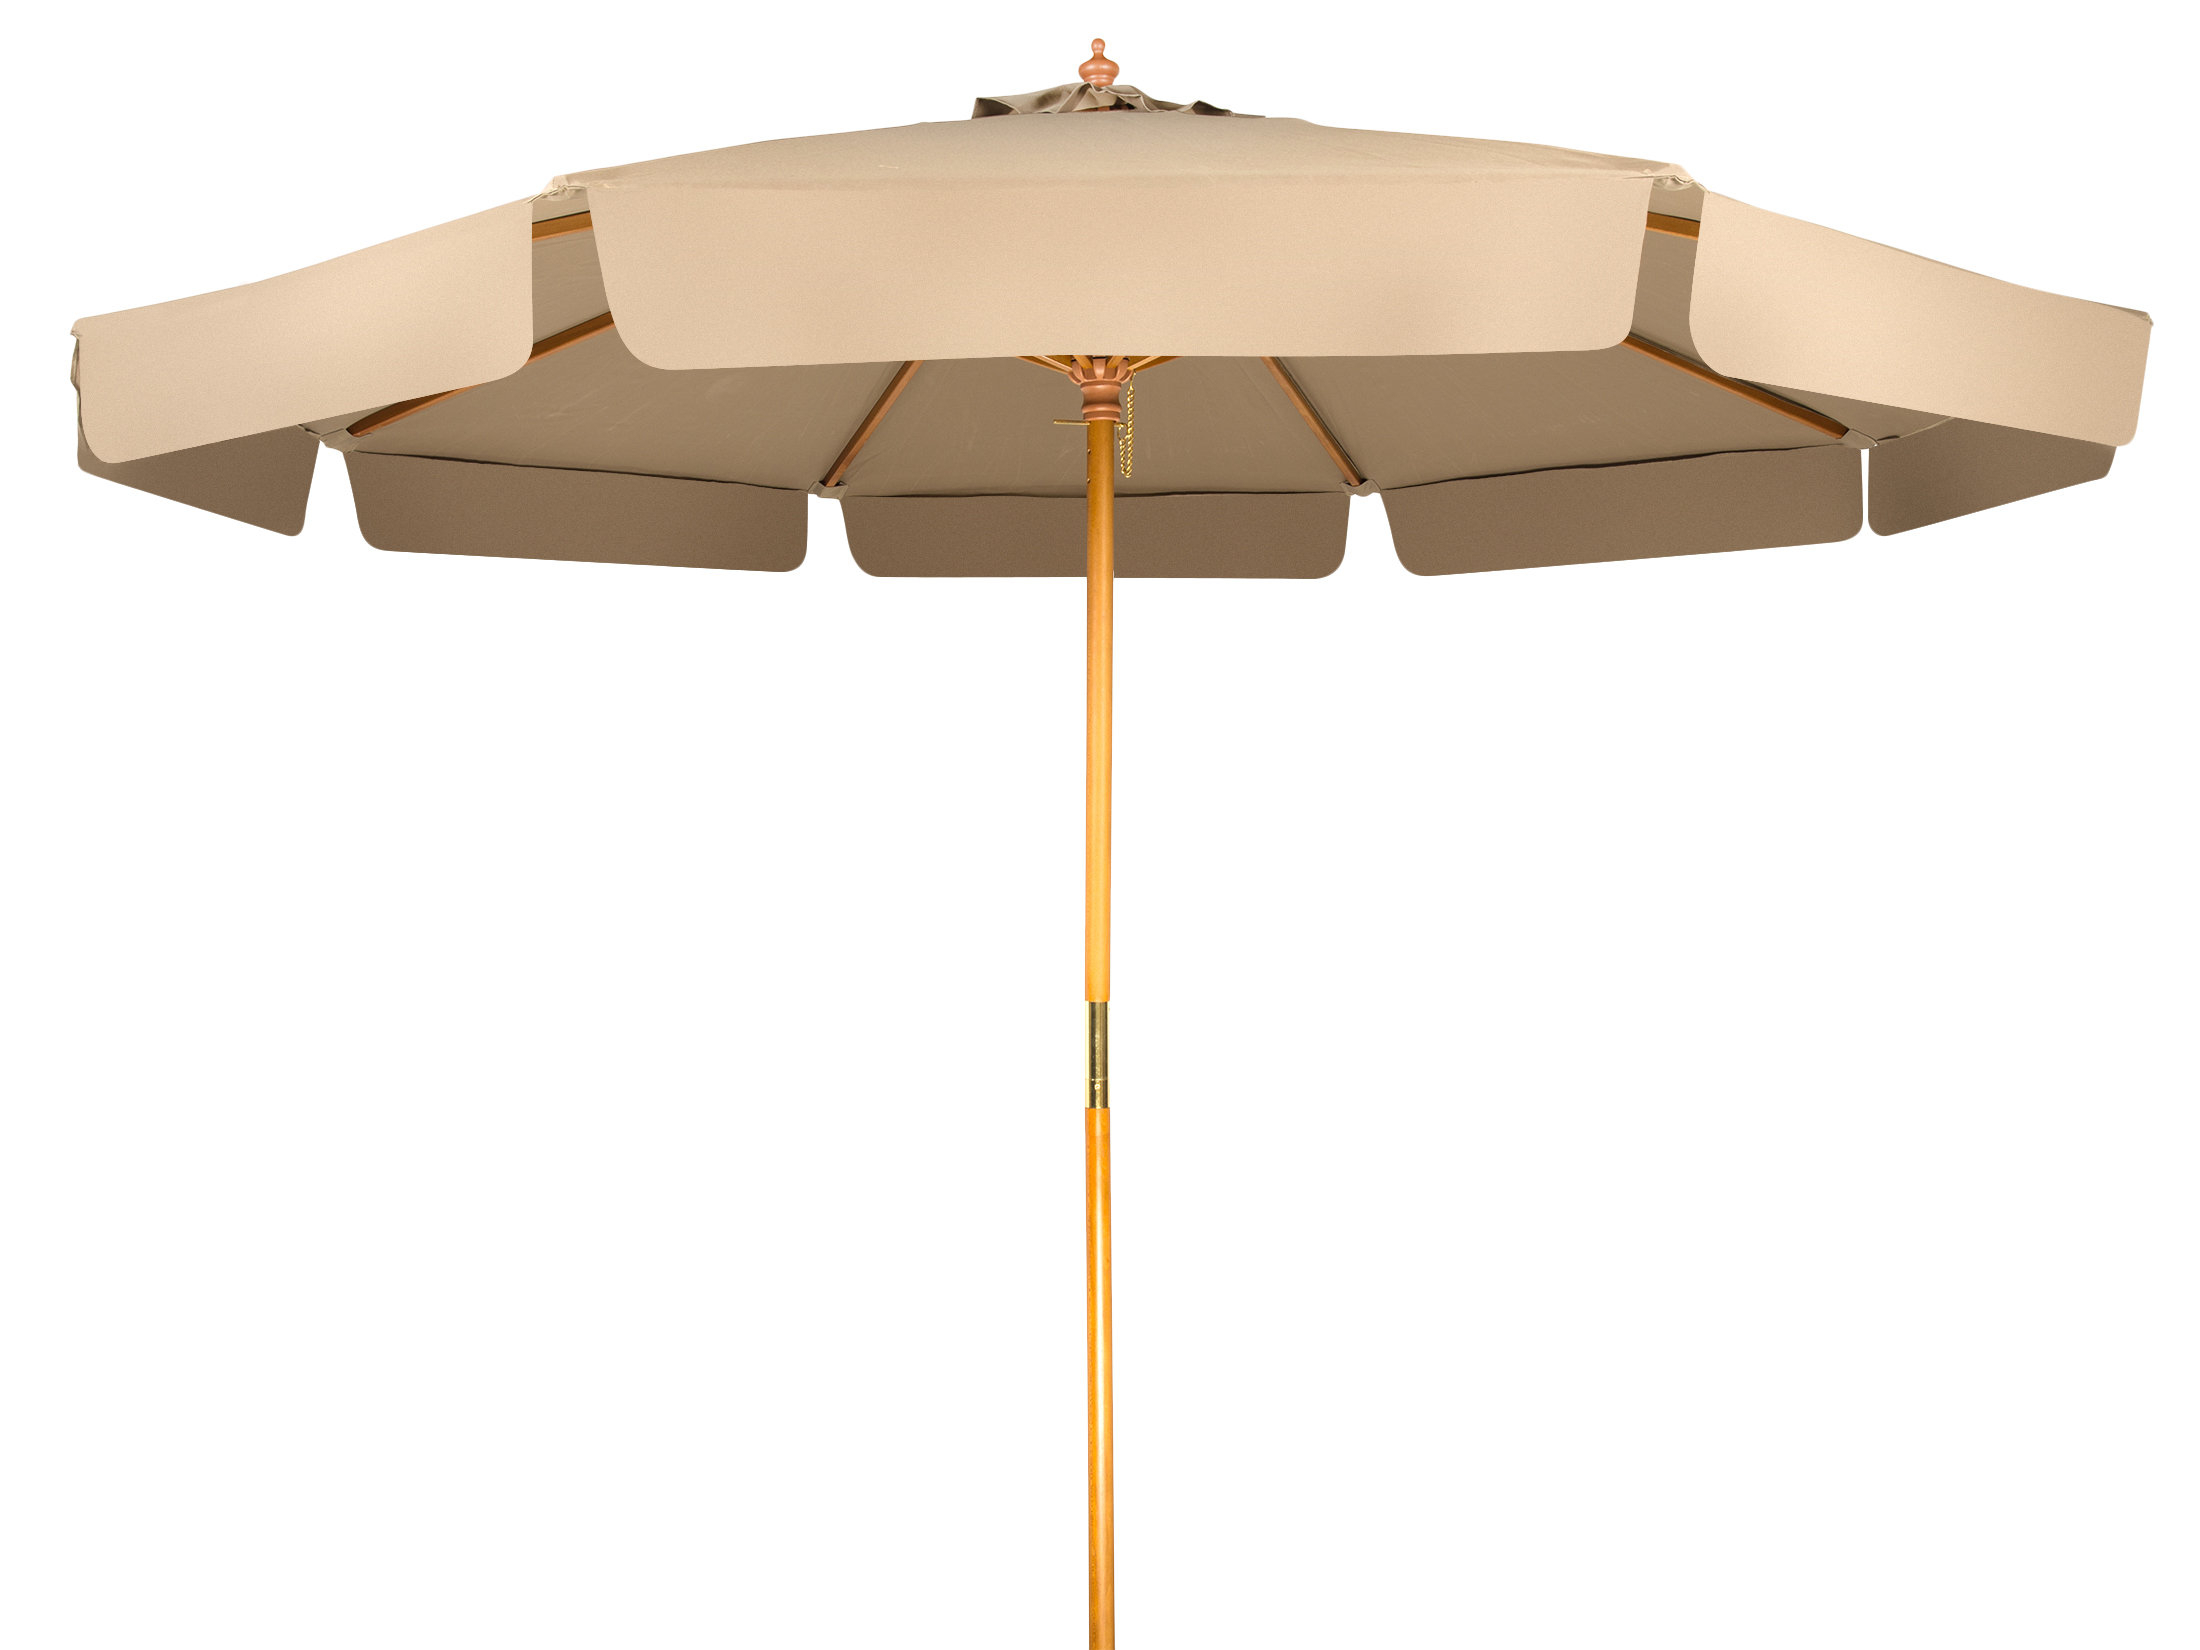 Well Known Grund Patio Wood Frame With Scalloped Edge 9' Market Umbrella With Lizarraga Market Umbrellas (View 19 of 20)